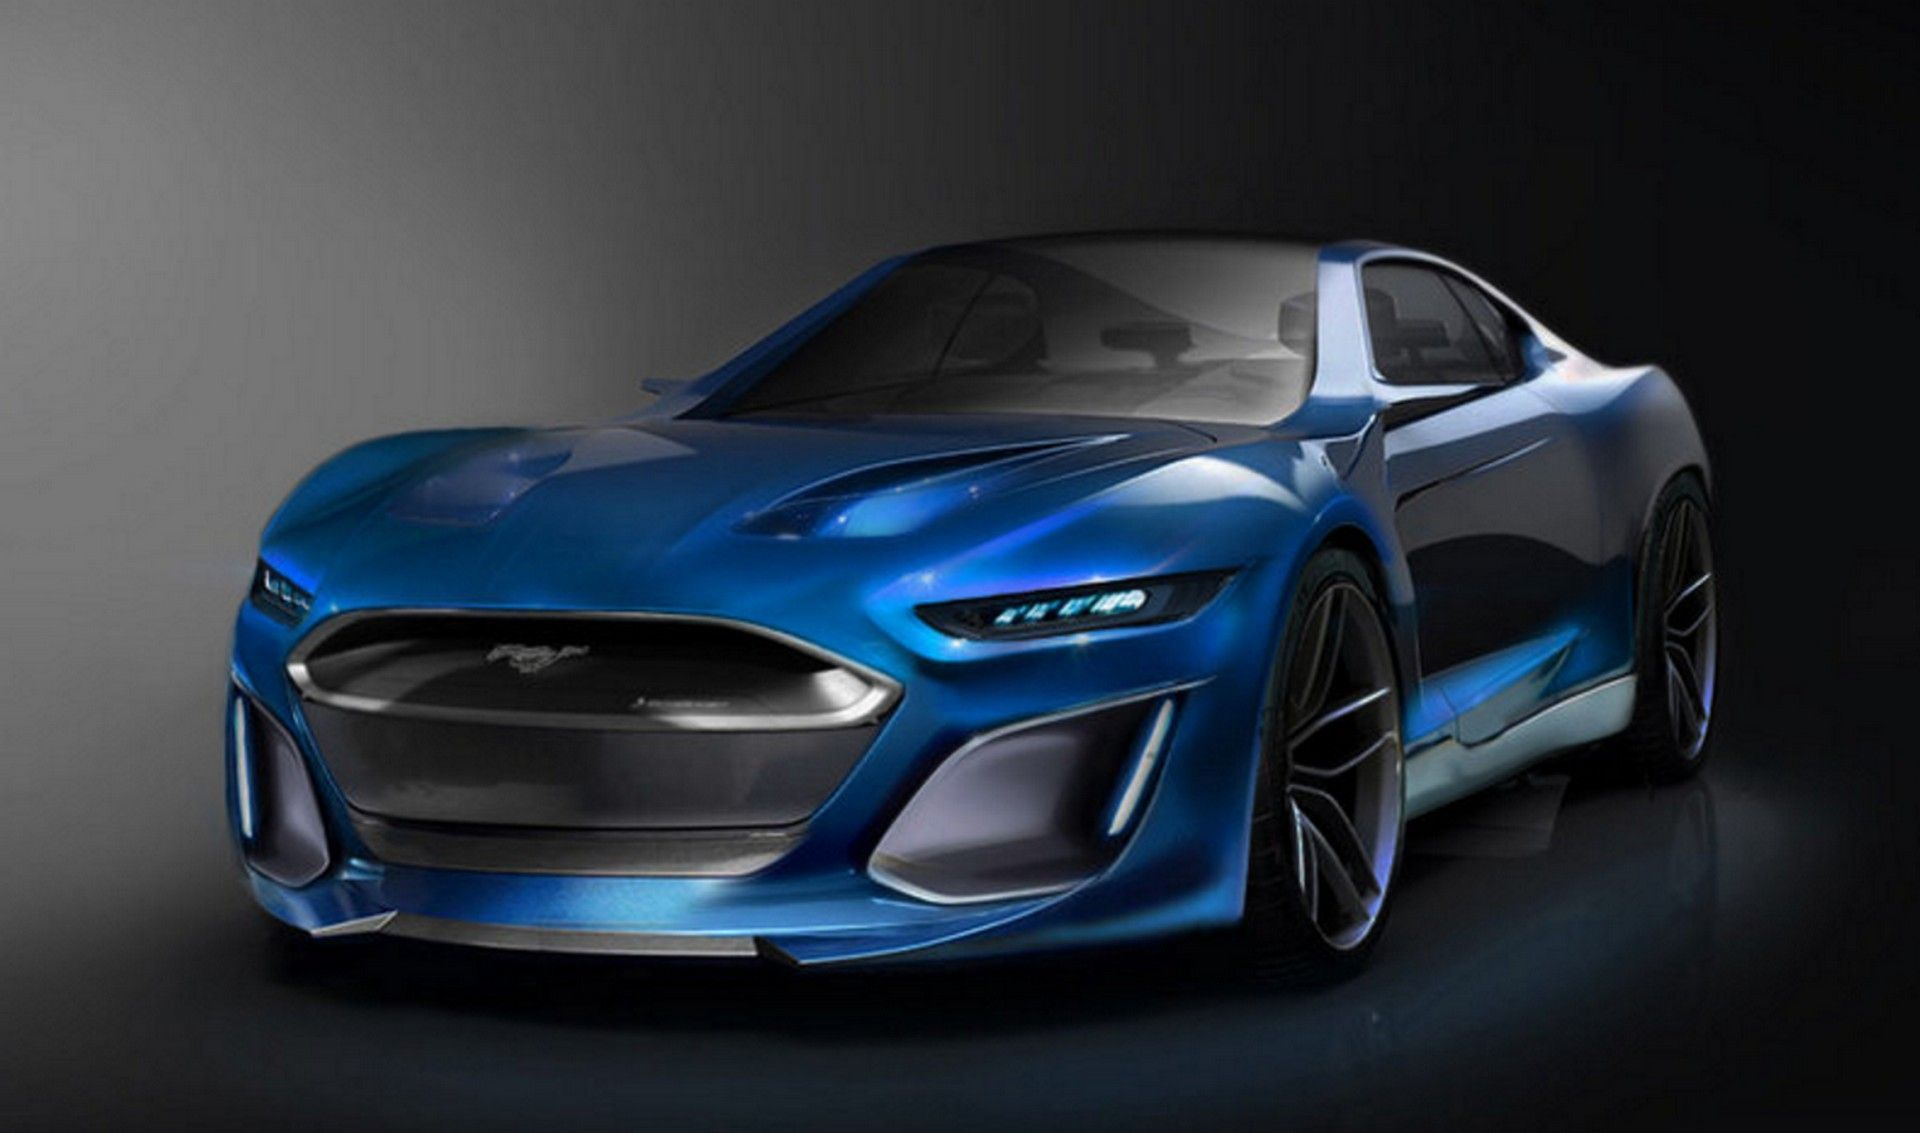 2021 Ford Police Interceptor Utility Specs In 2020 Concept Car Interior Concept Cars Ford Shelby